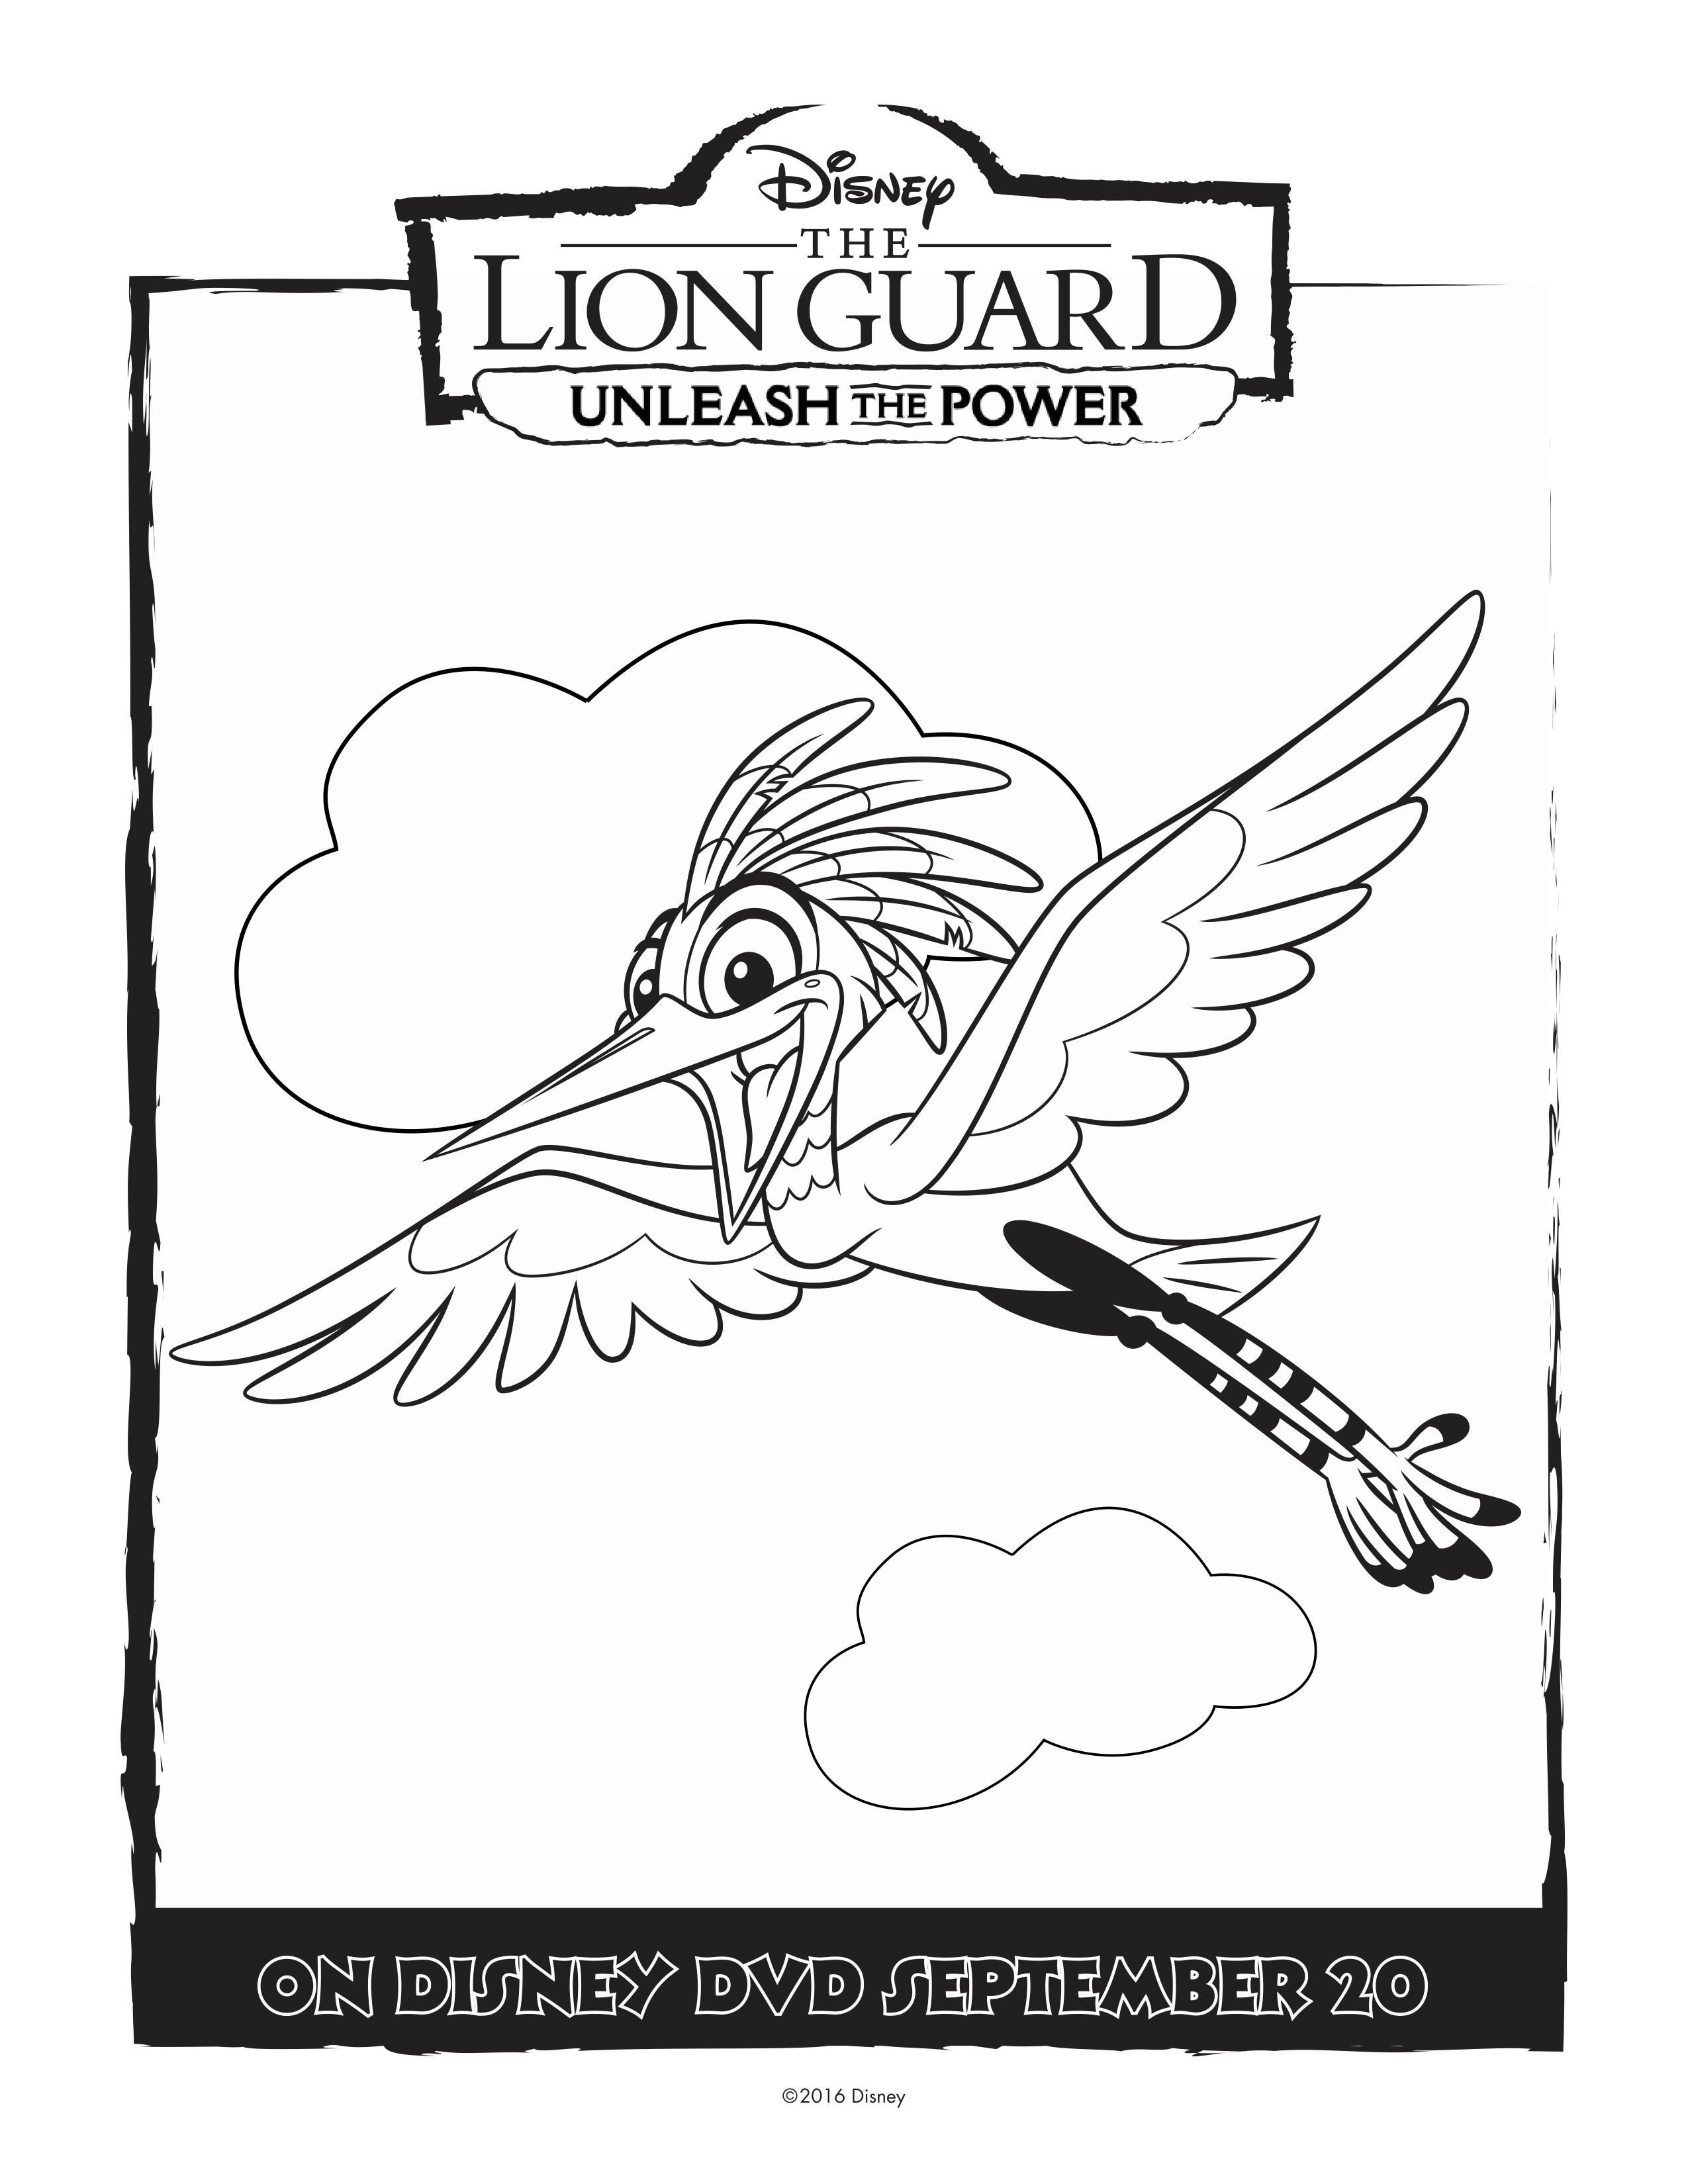 free lion guard coloring pages Collection-Lion King Coloring Pages Disney Webkinz Coloring Pages Elegant Disney O Lion Guard Coloring Page 18-d